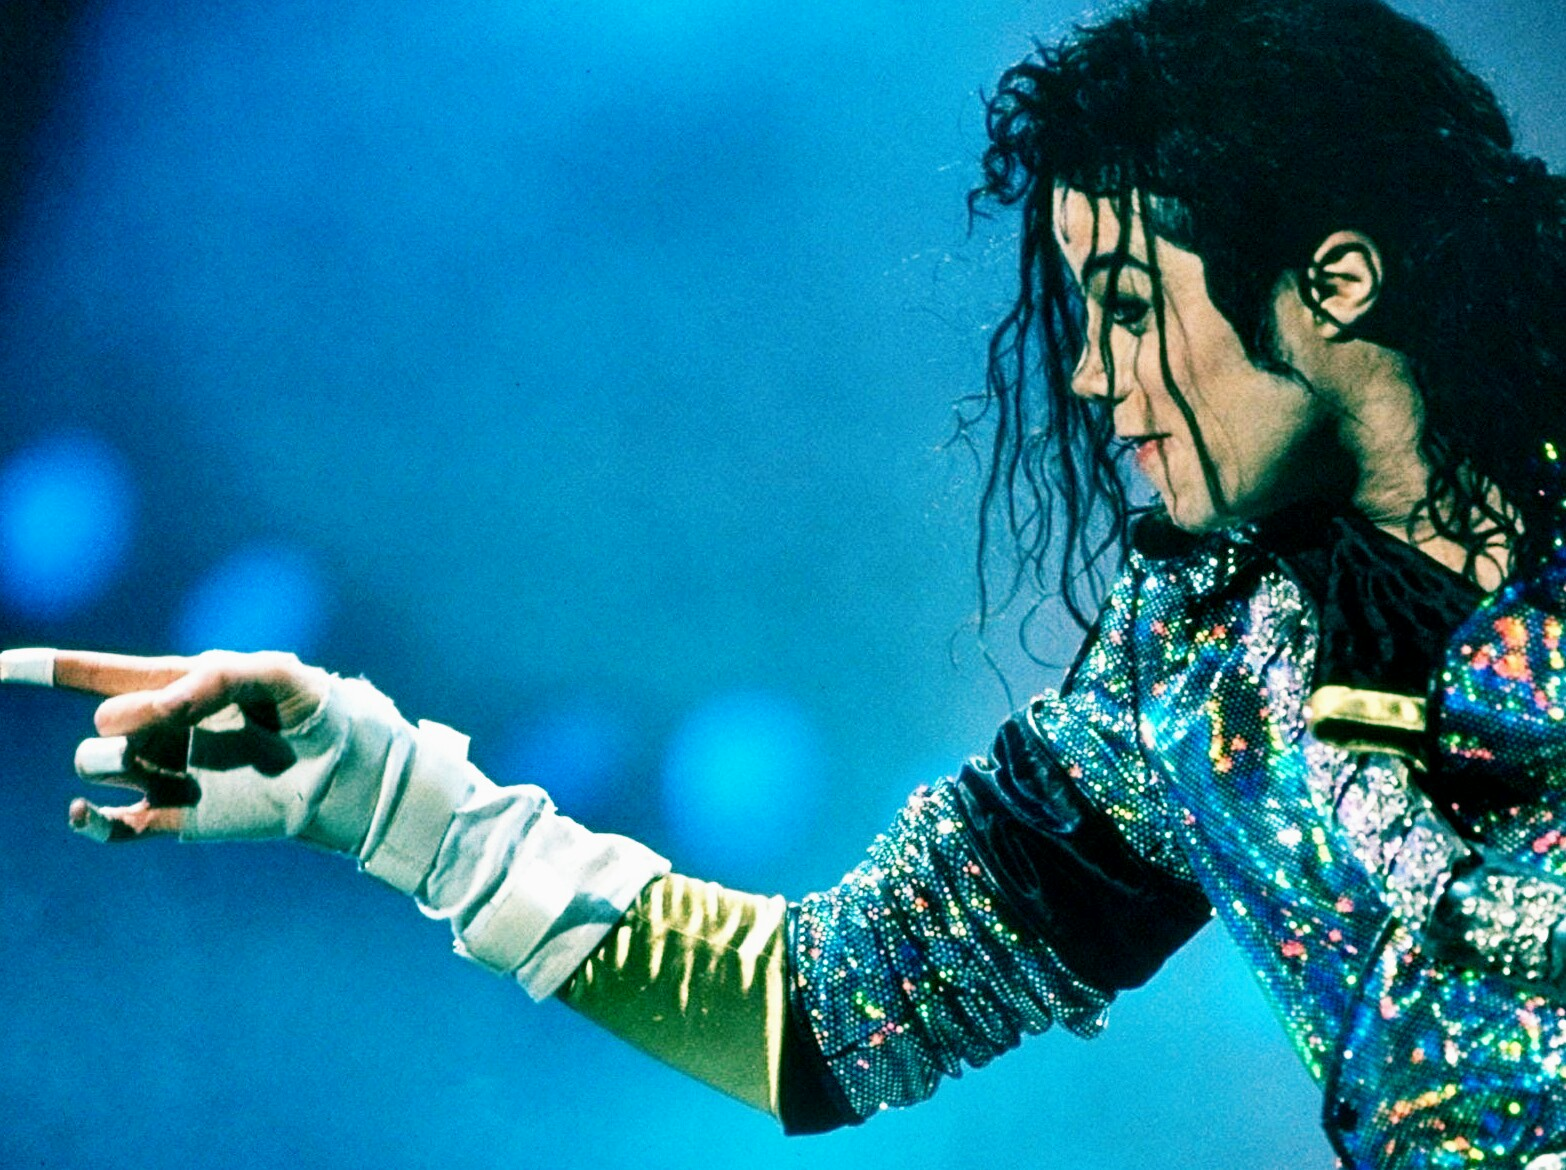 WorldWide Michael Jackson Fans: Michael Jackson Wallpapers